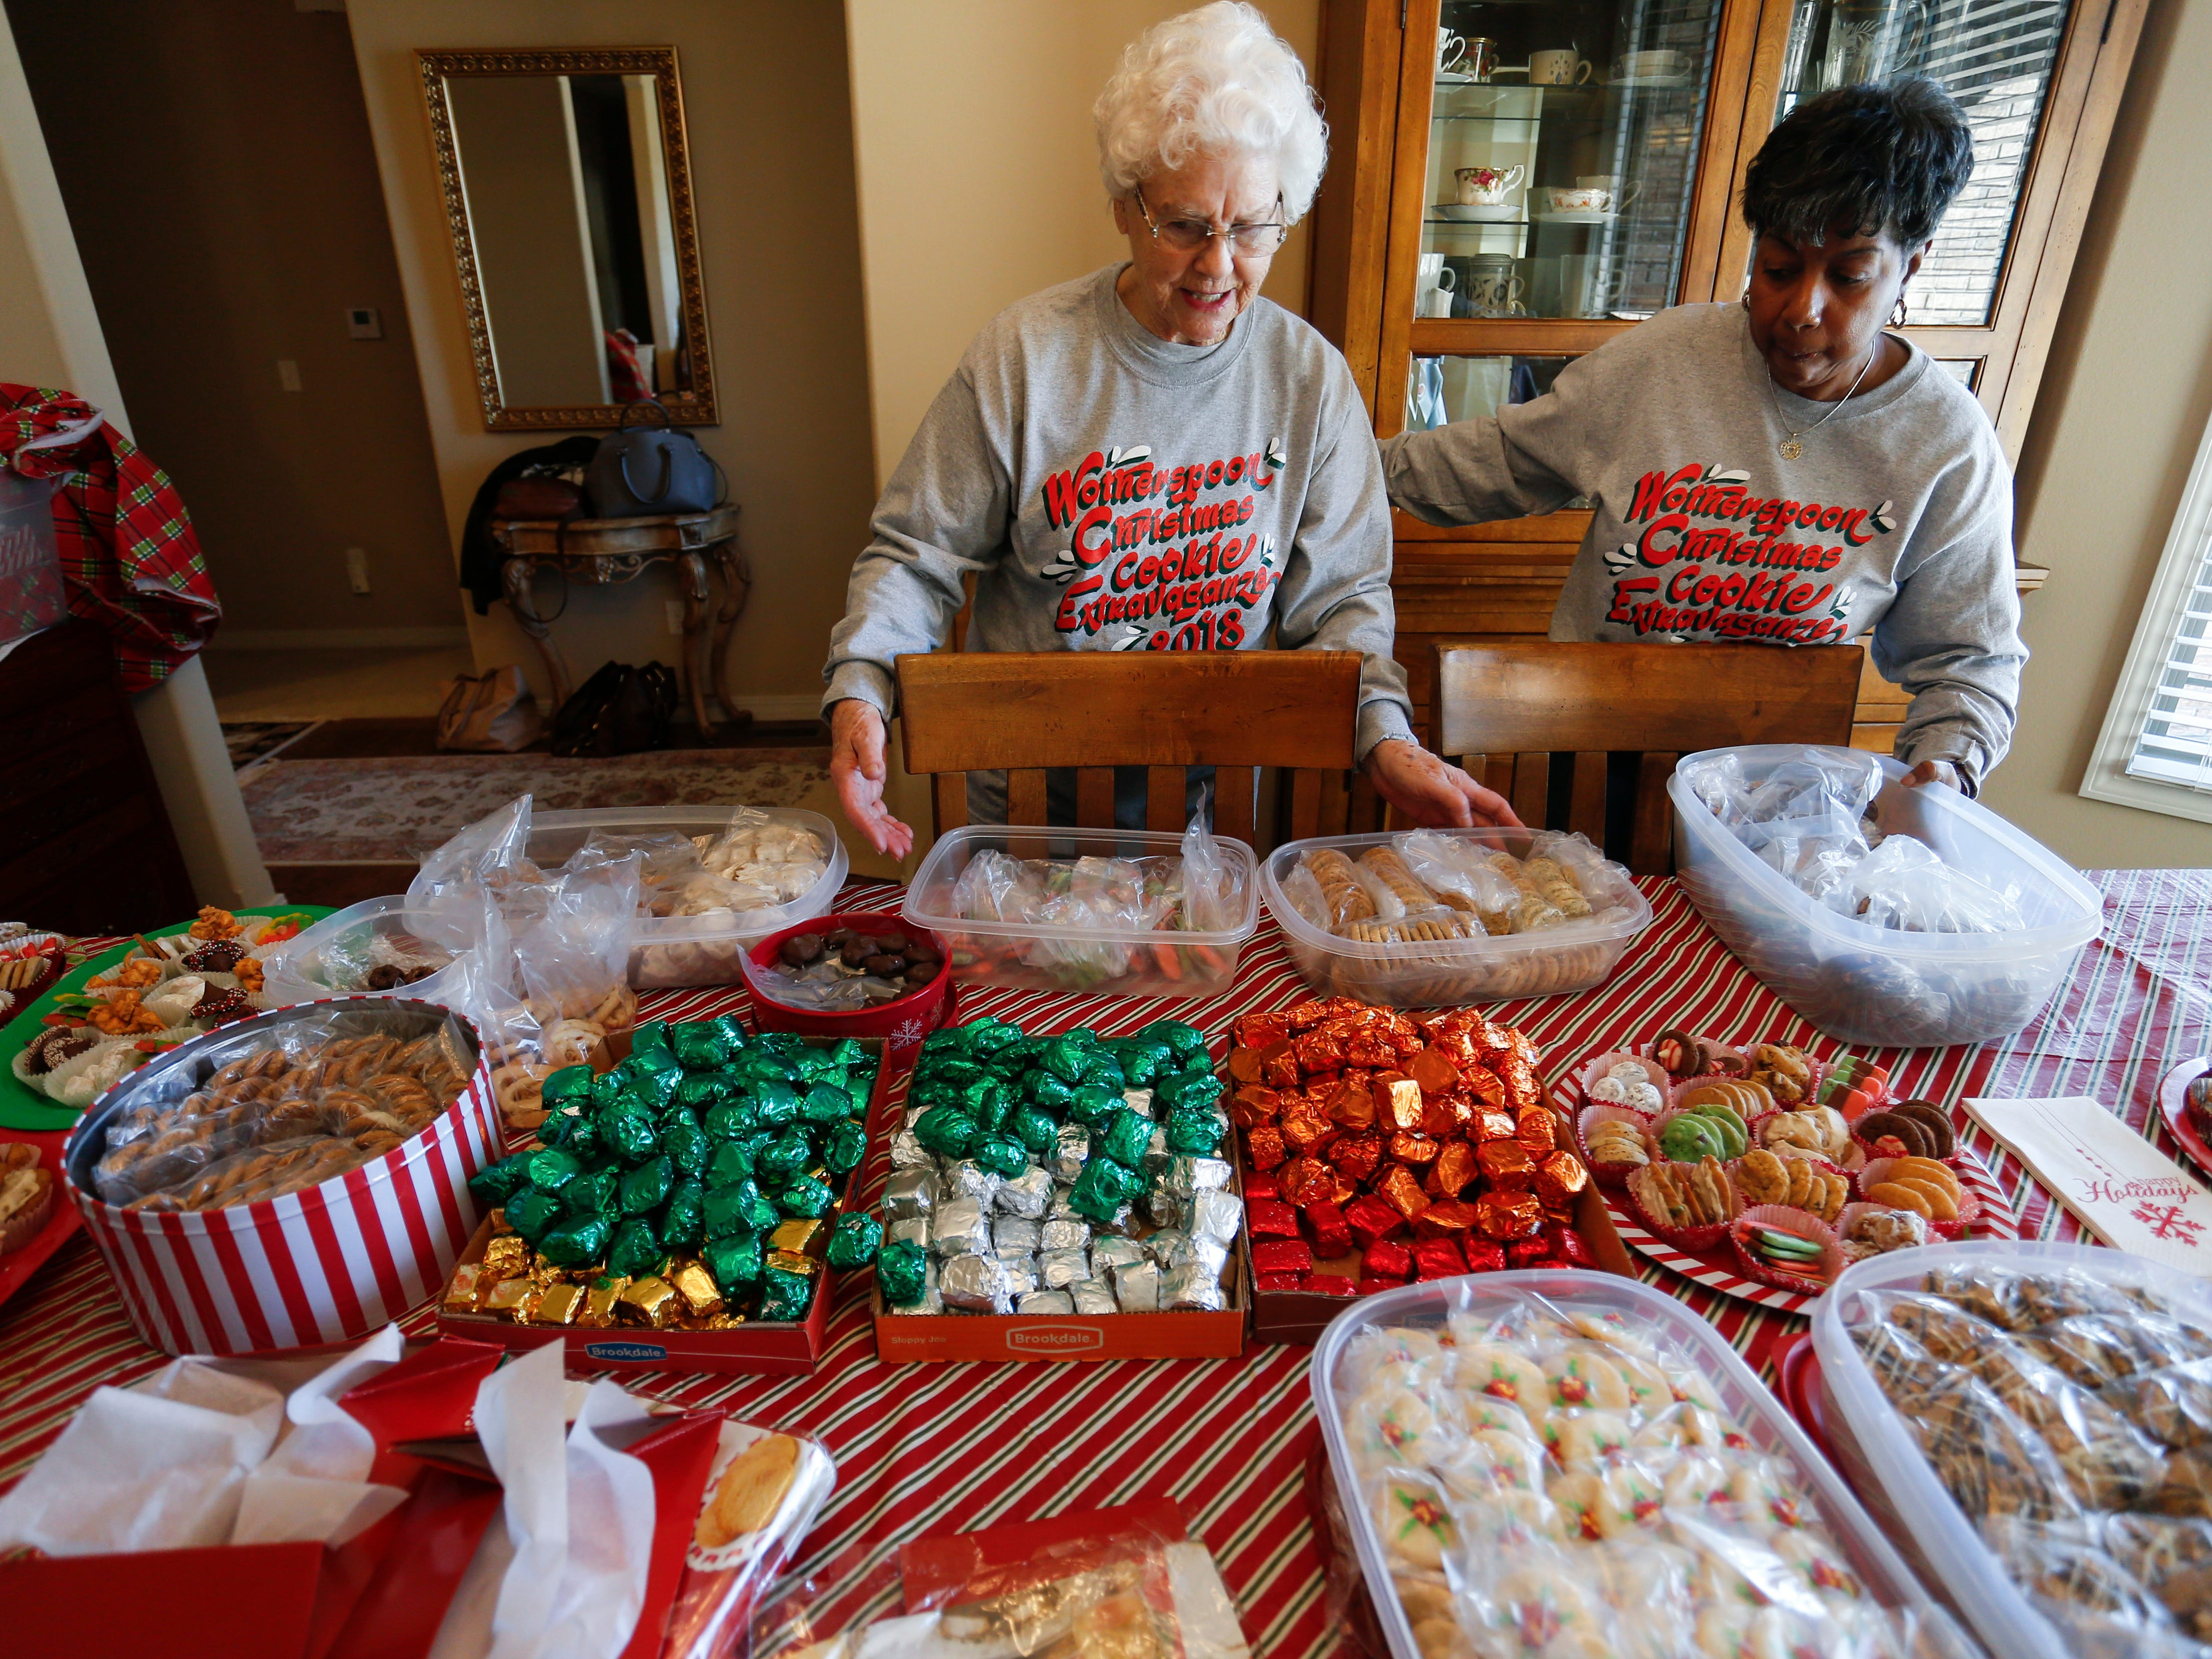 Jeanette Wotherspoon, 84, and cousin Pam Ivy place tubs of Christmas cookies out on the table for the Wotherspoon Christmas cookie extravaganza on Saturday, Dec. 15, 2018.